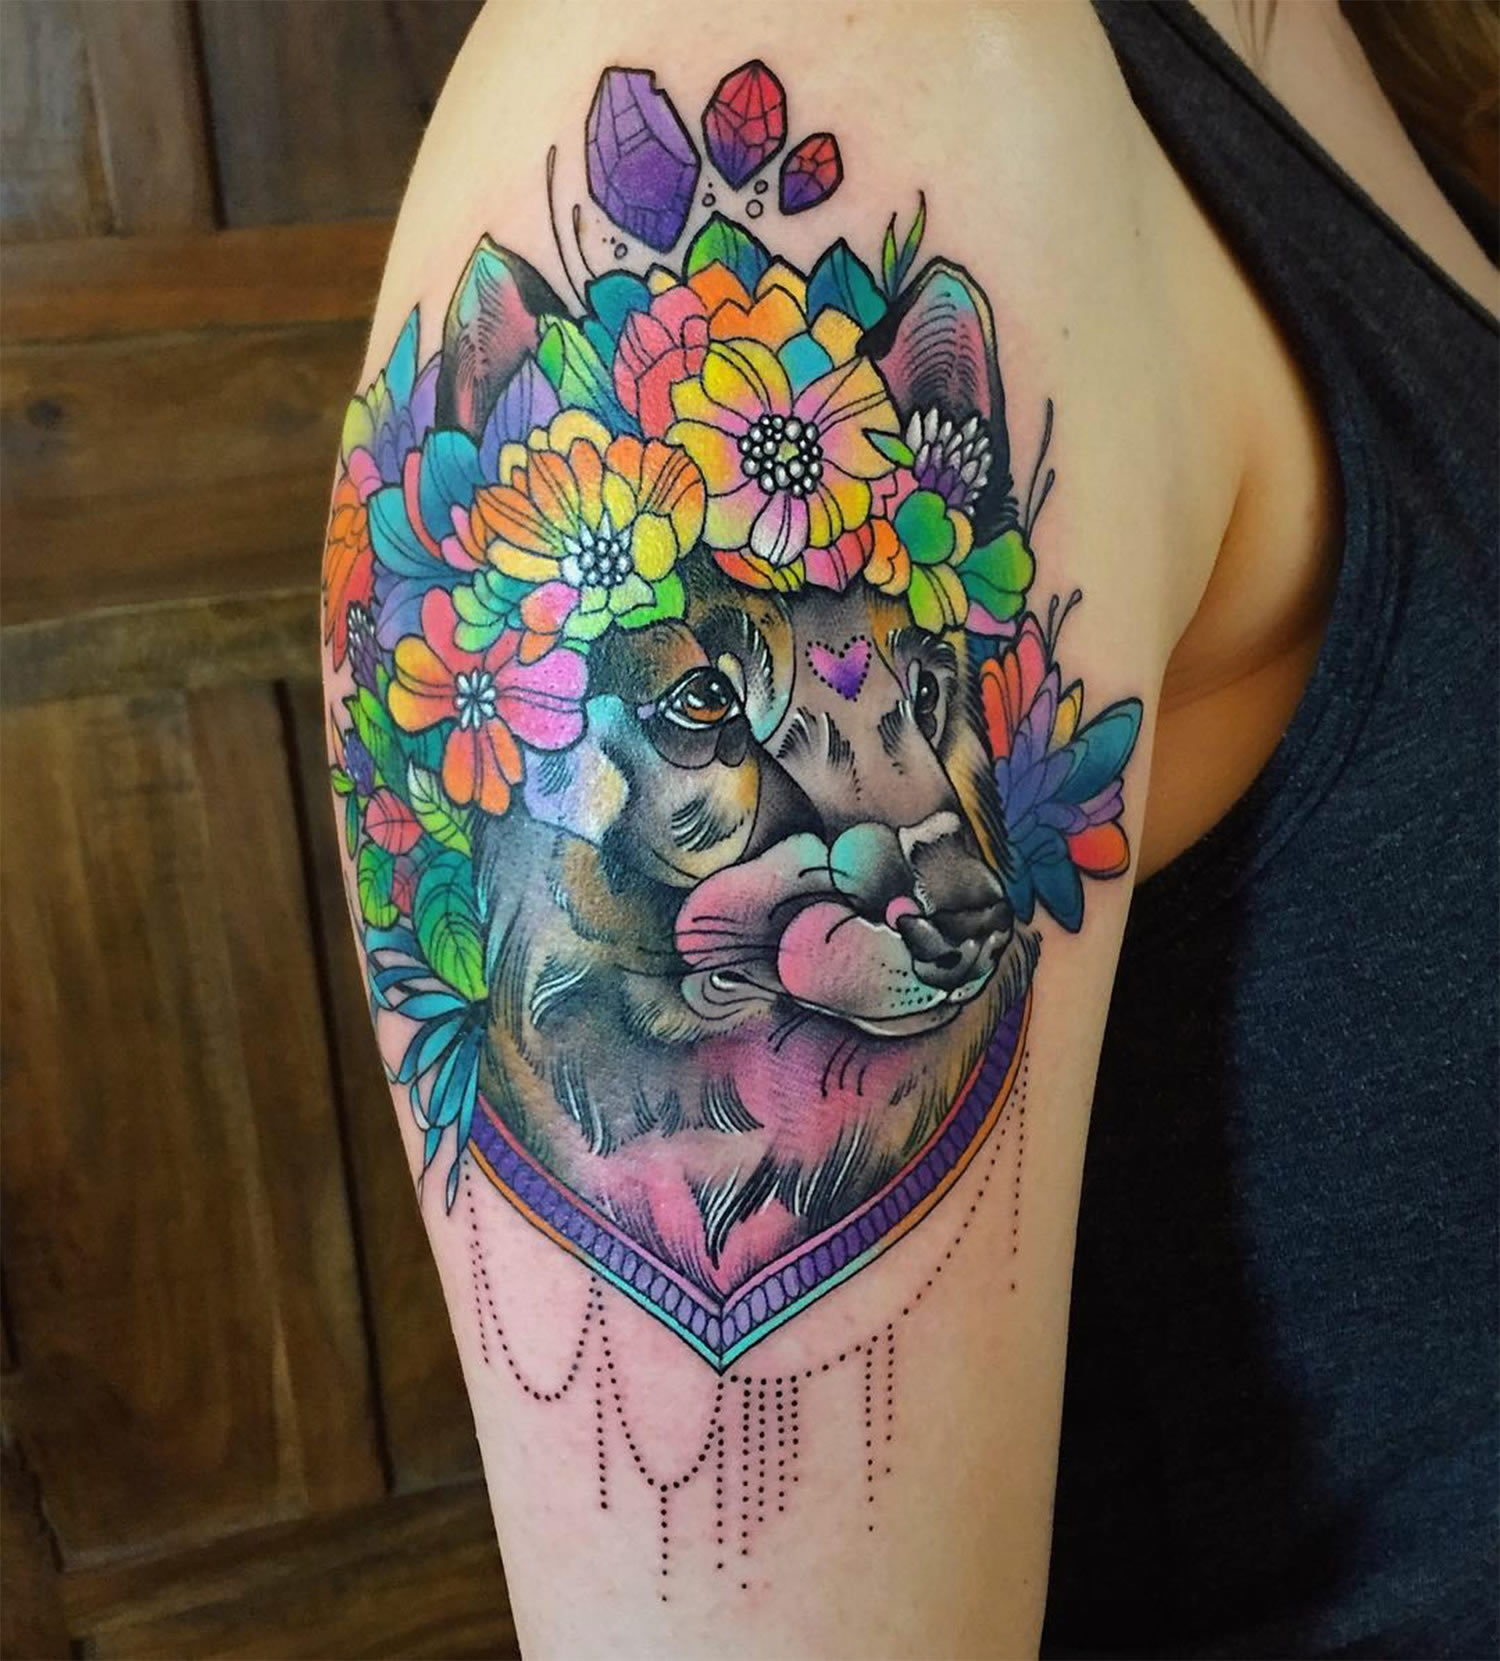 flowers on dog's head,. tattoo on arm